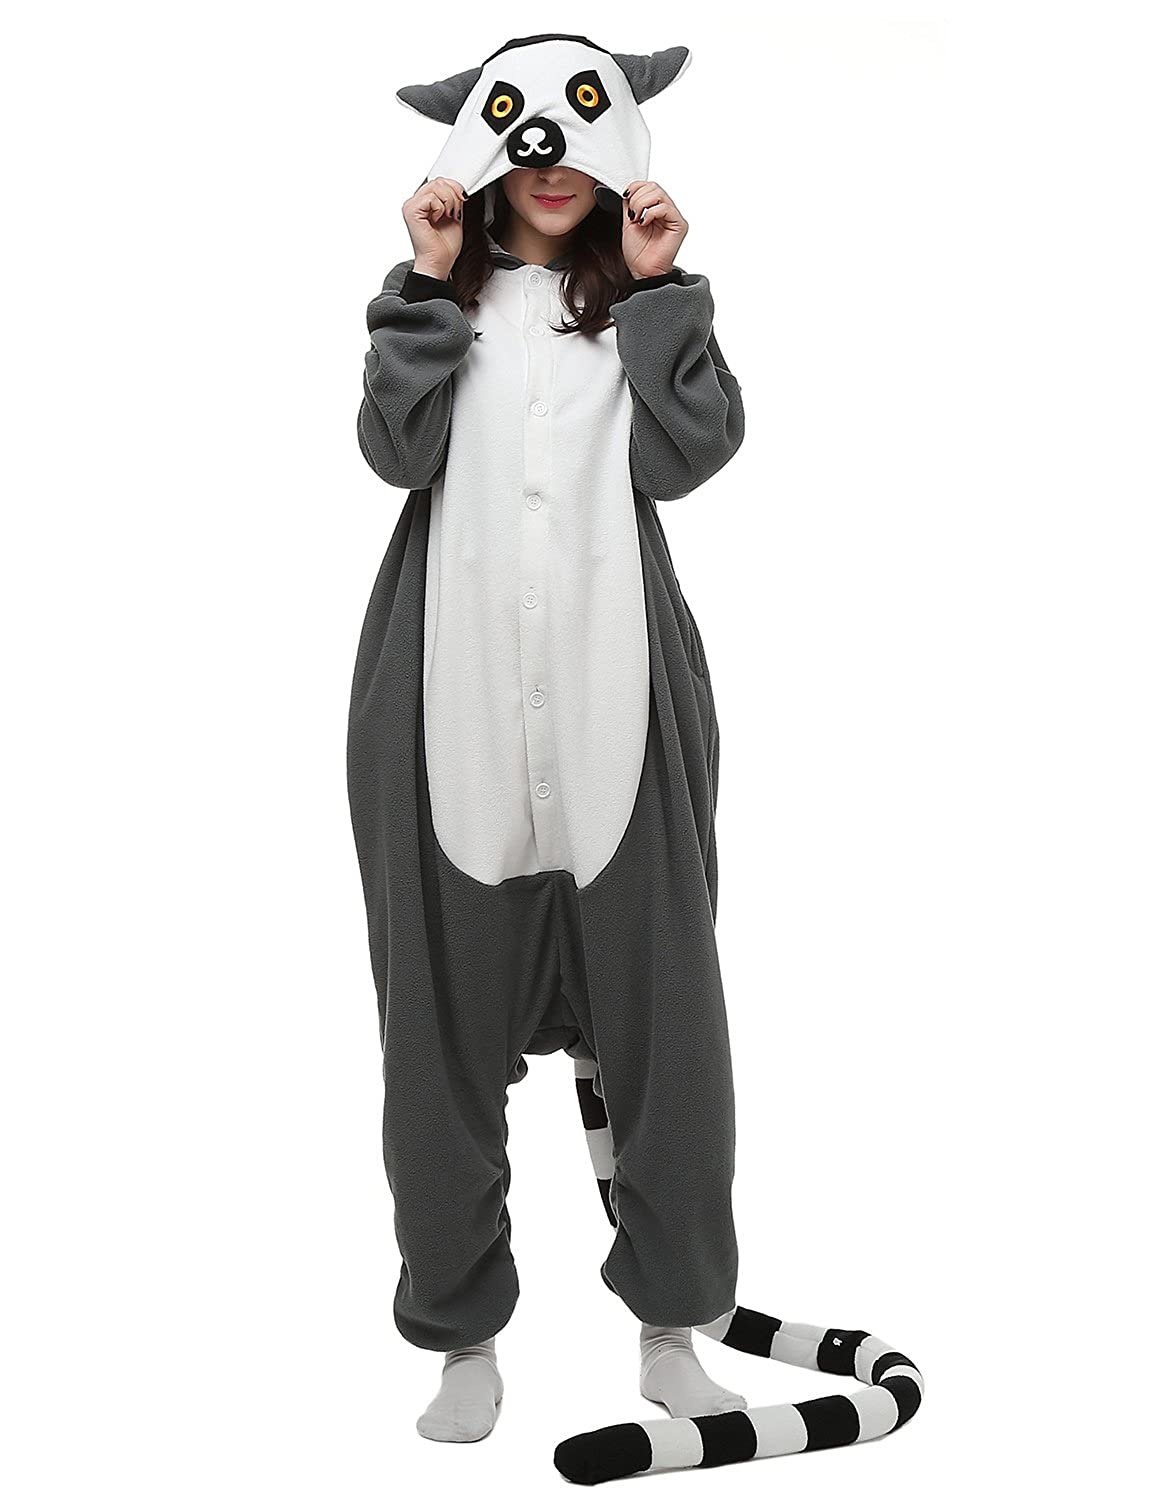 Sarahbridal Onesie Polar Fleece Pyjamas Cartoon Animal Cosplay Sleepwear for Unisex